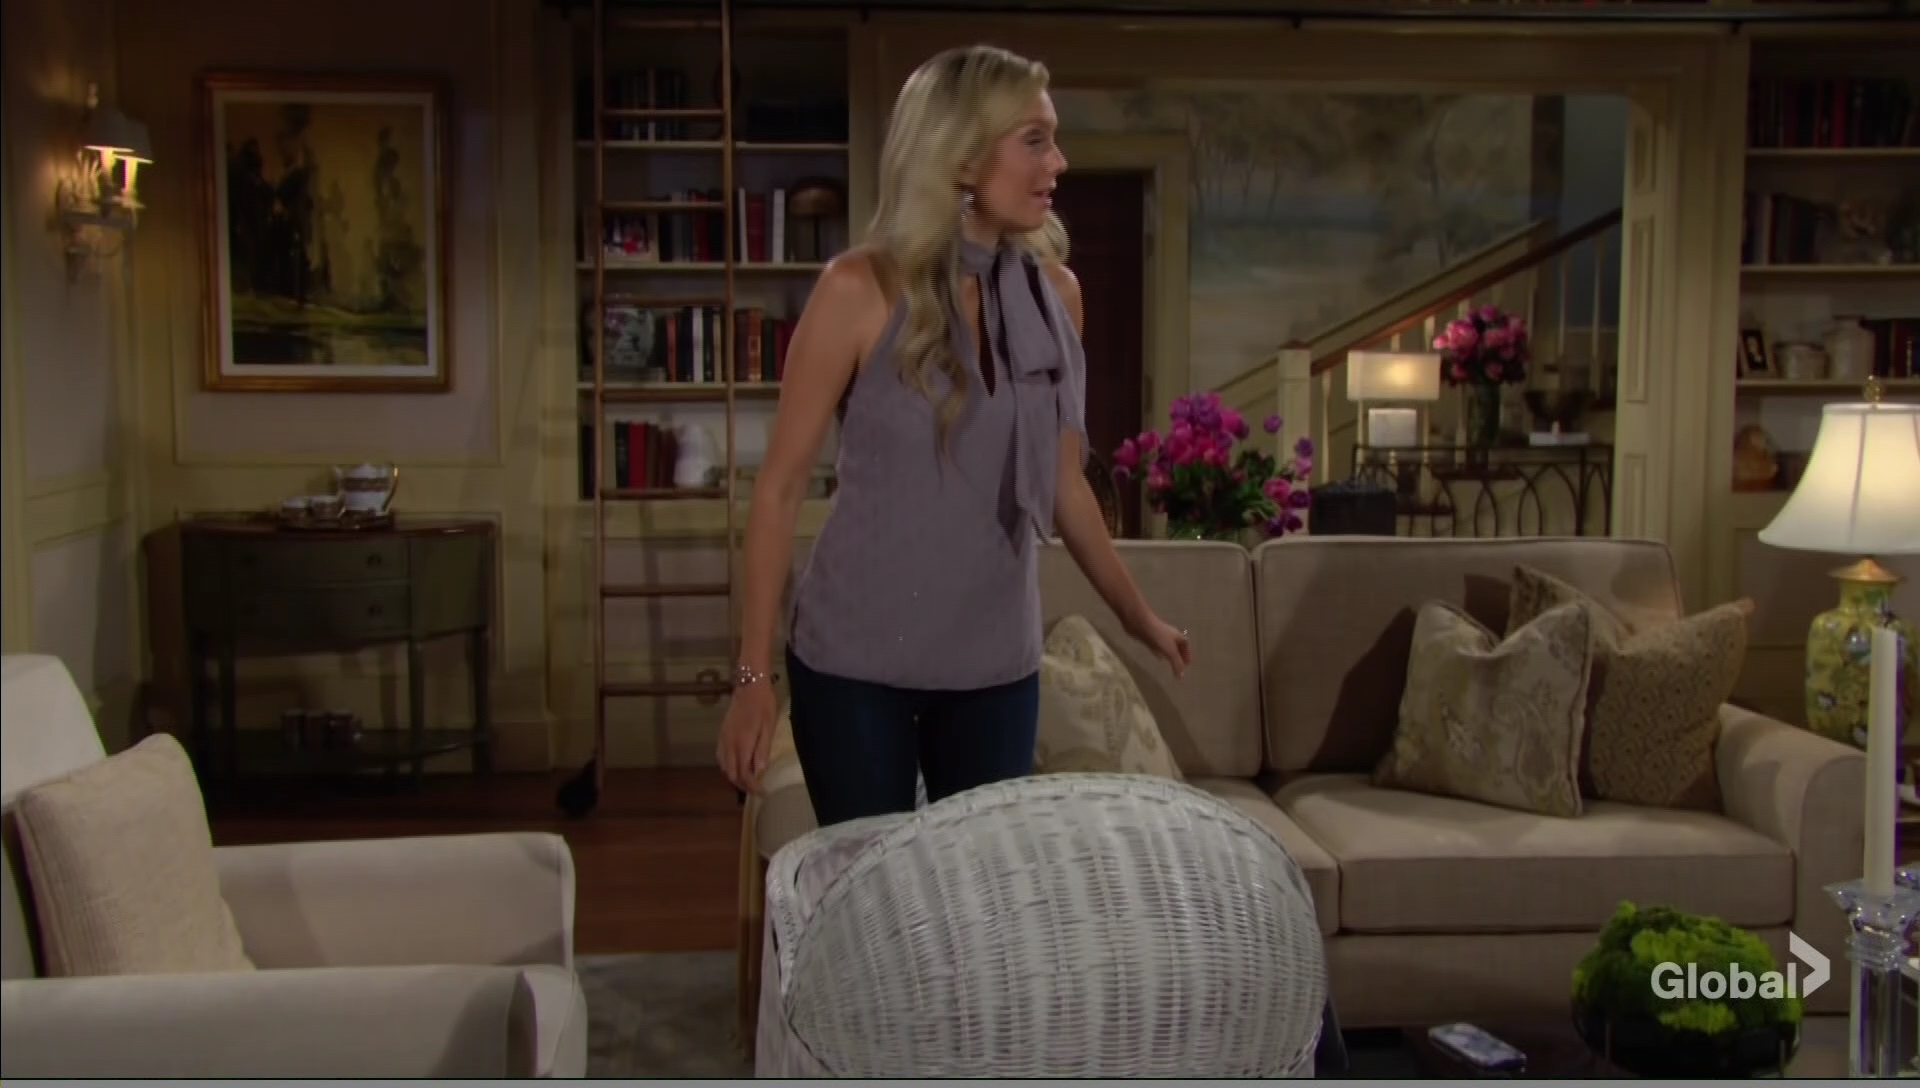 abby frets  young restless